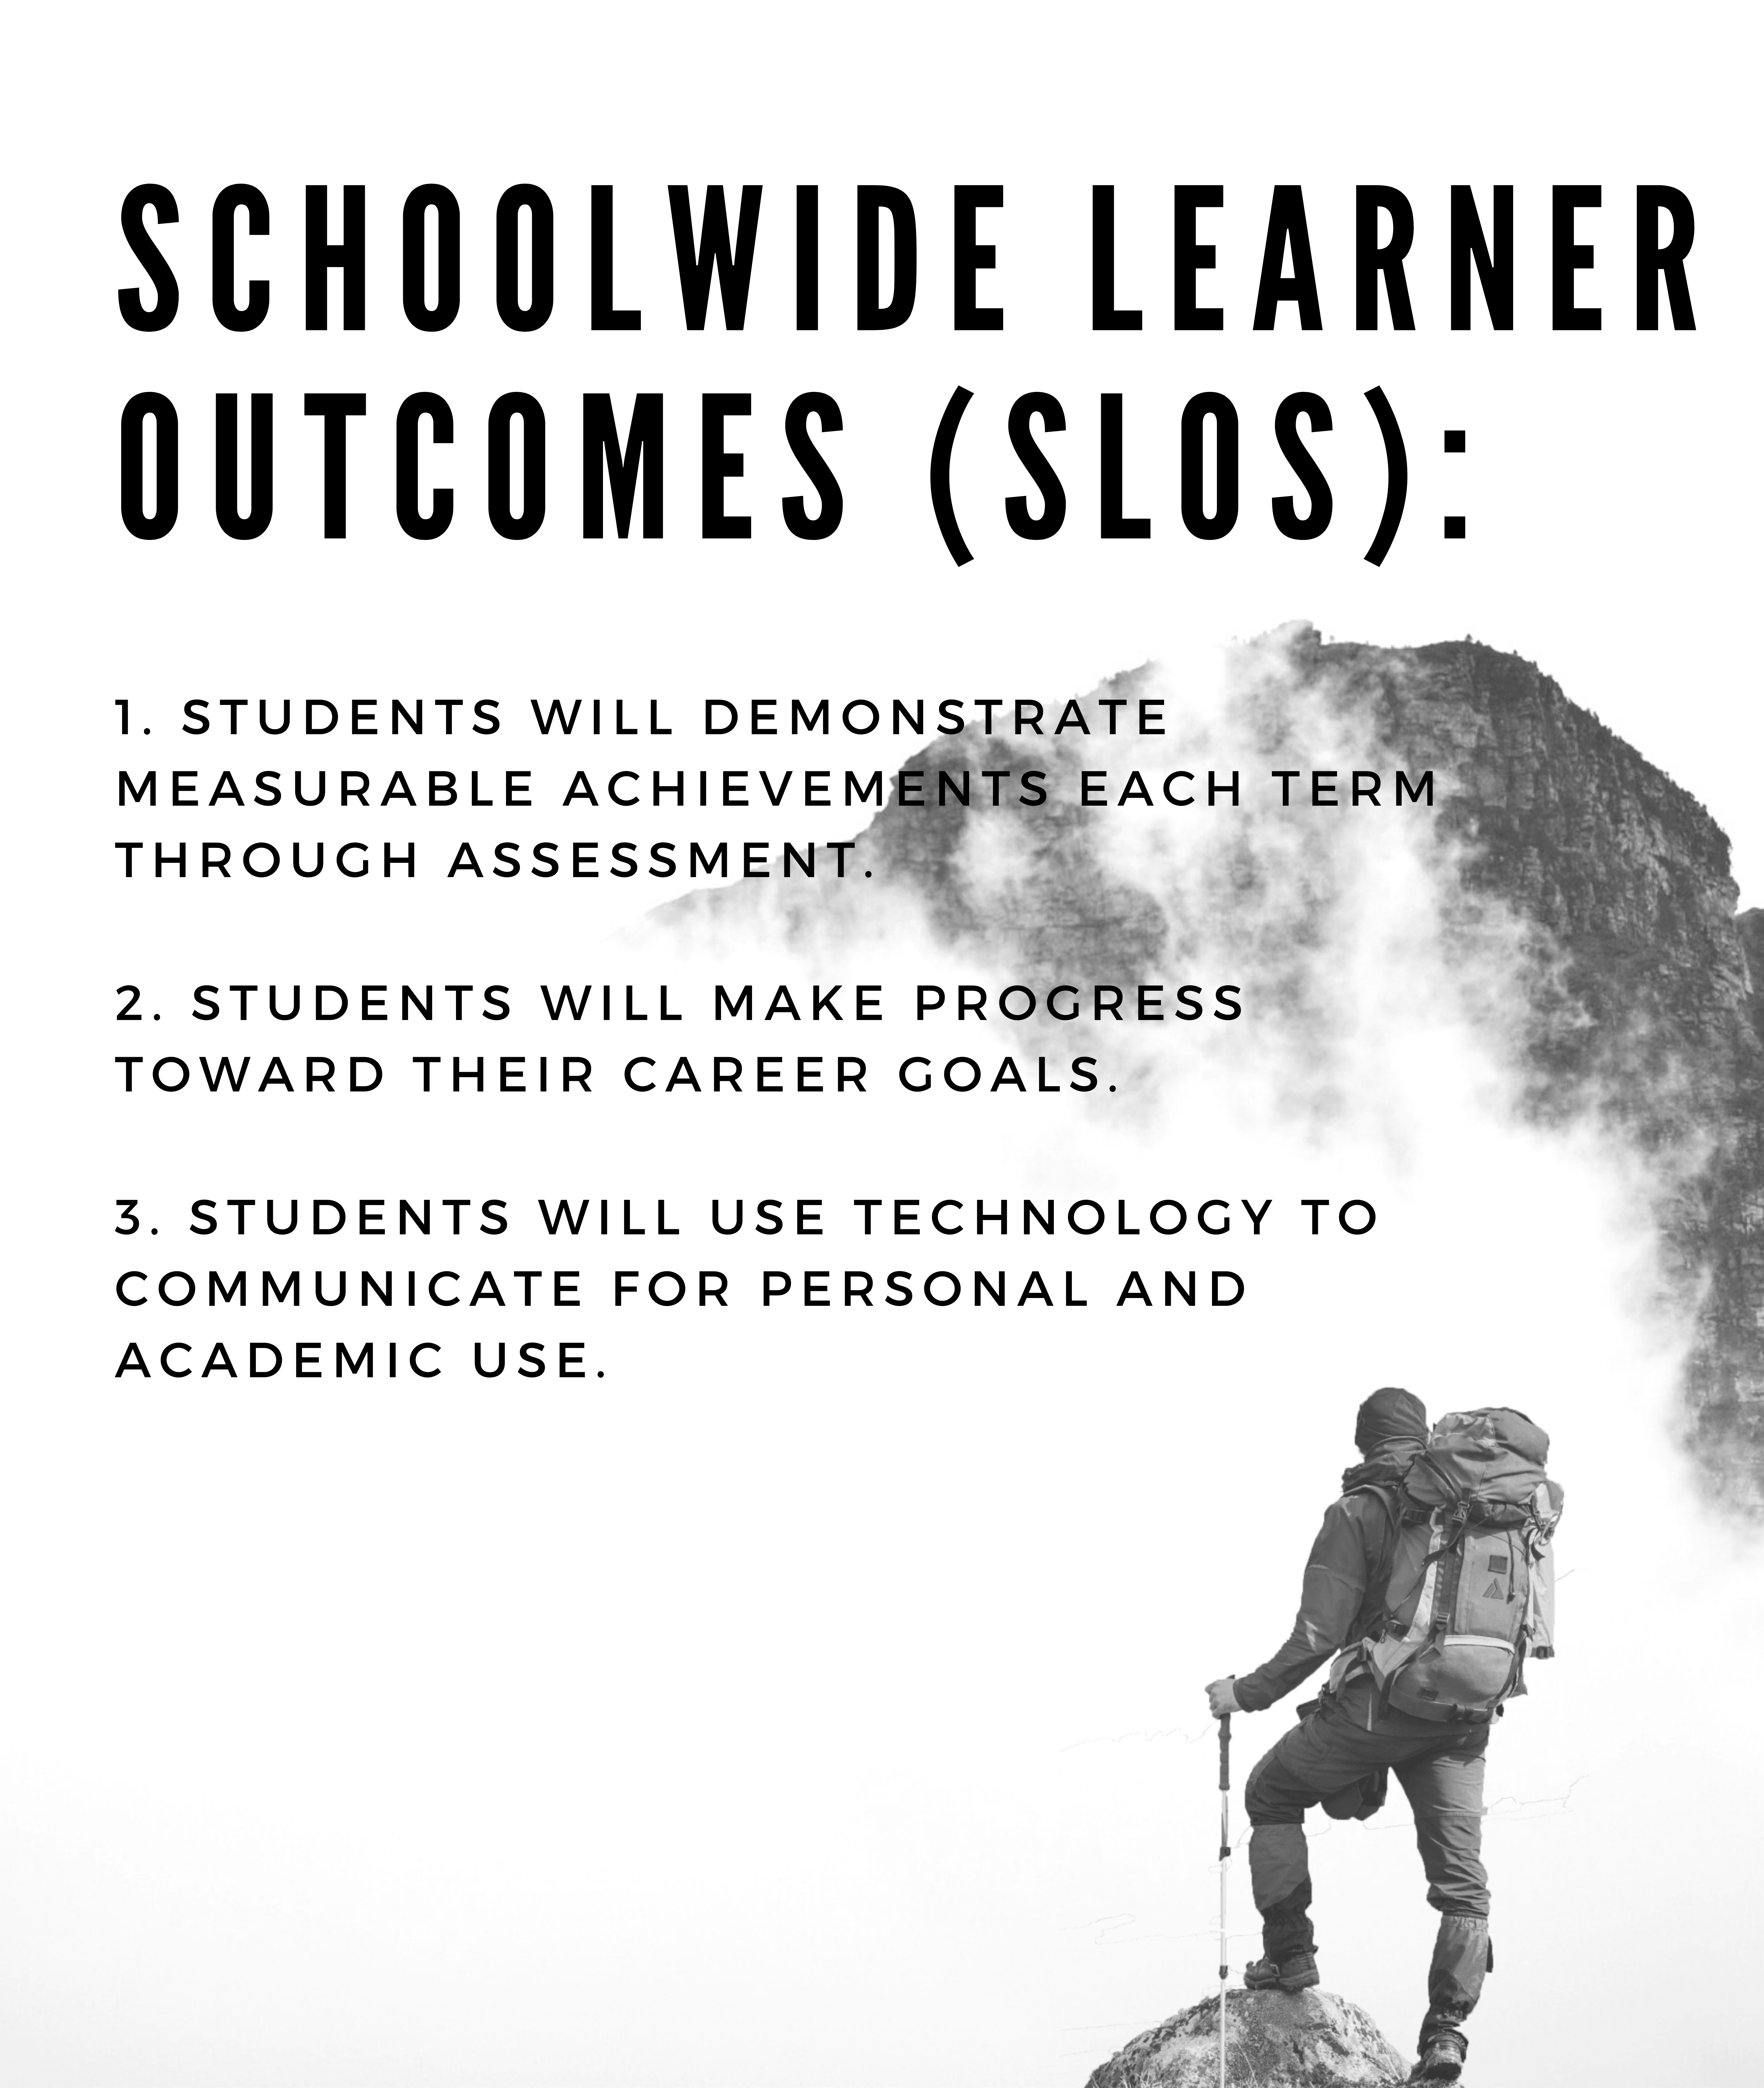 Schoolwide learner outcomes (SLOS): 1. Students will demonstrate measurable achievements each term through assessment 2. Students will make progress toward their career goals. 3. Students will use technology to communicate for personal and academic use.